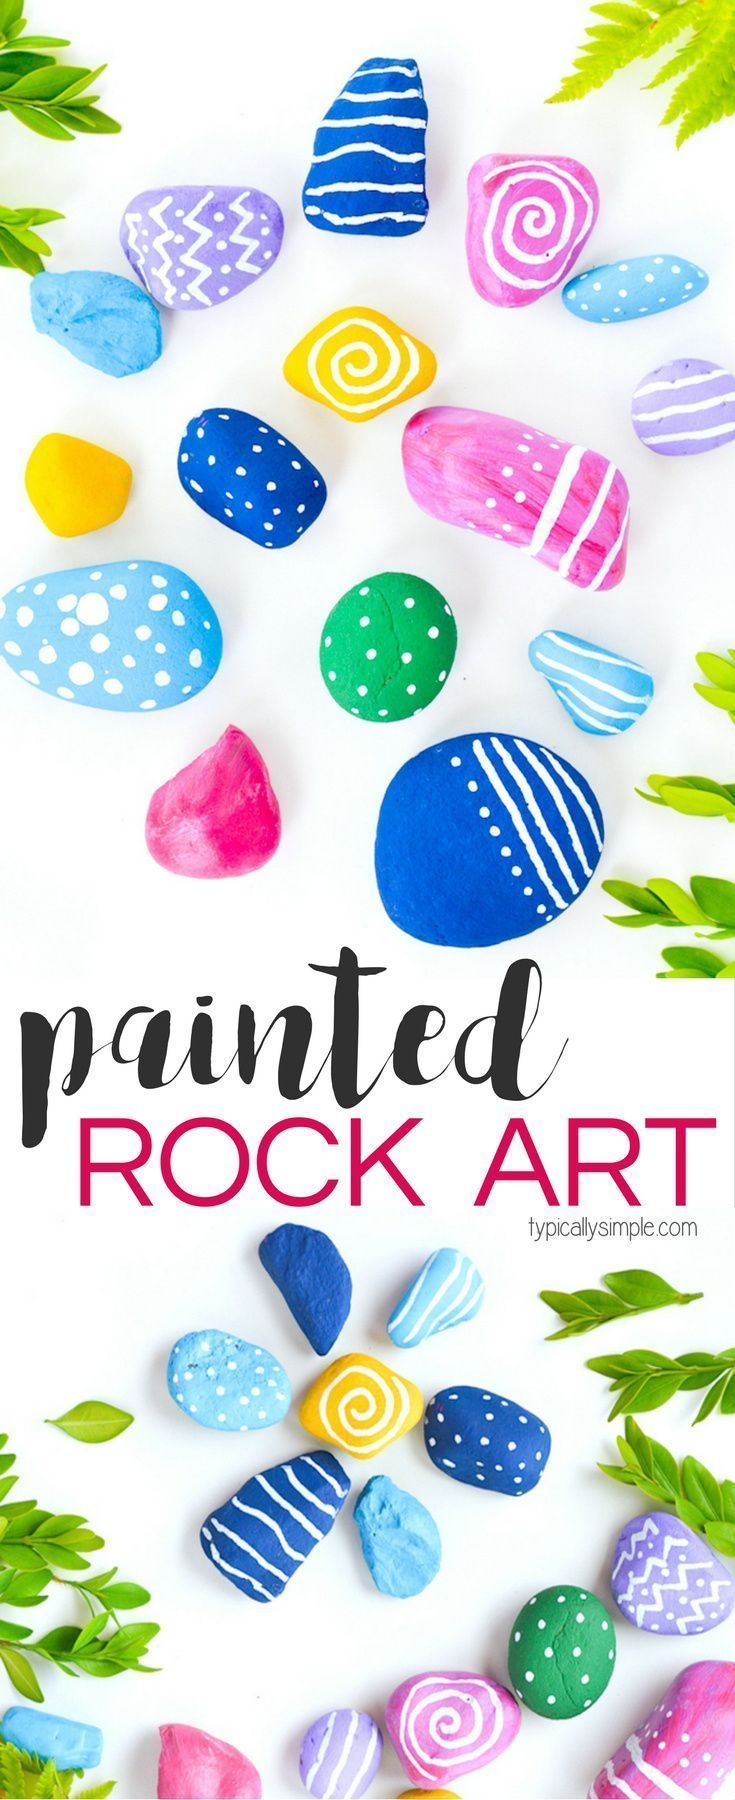 Get creative with this painted rock art project - a perfect craft for camping, at the cabin, or just in the backyard!